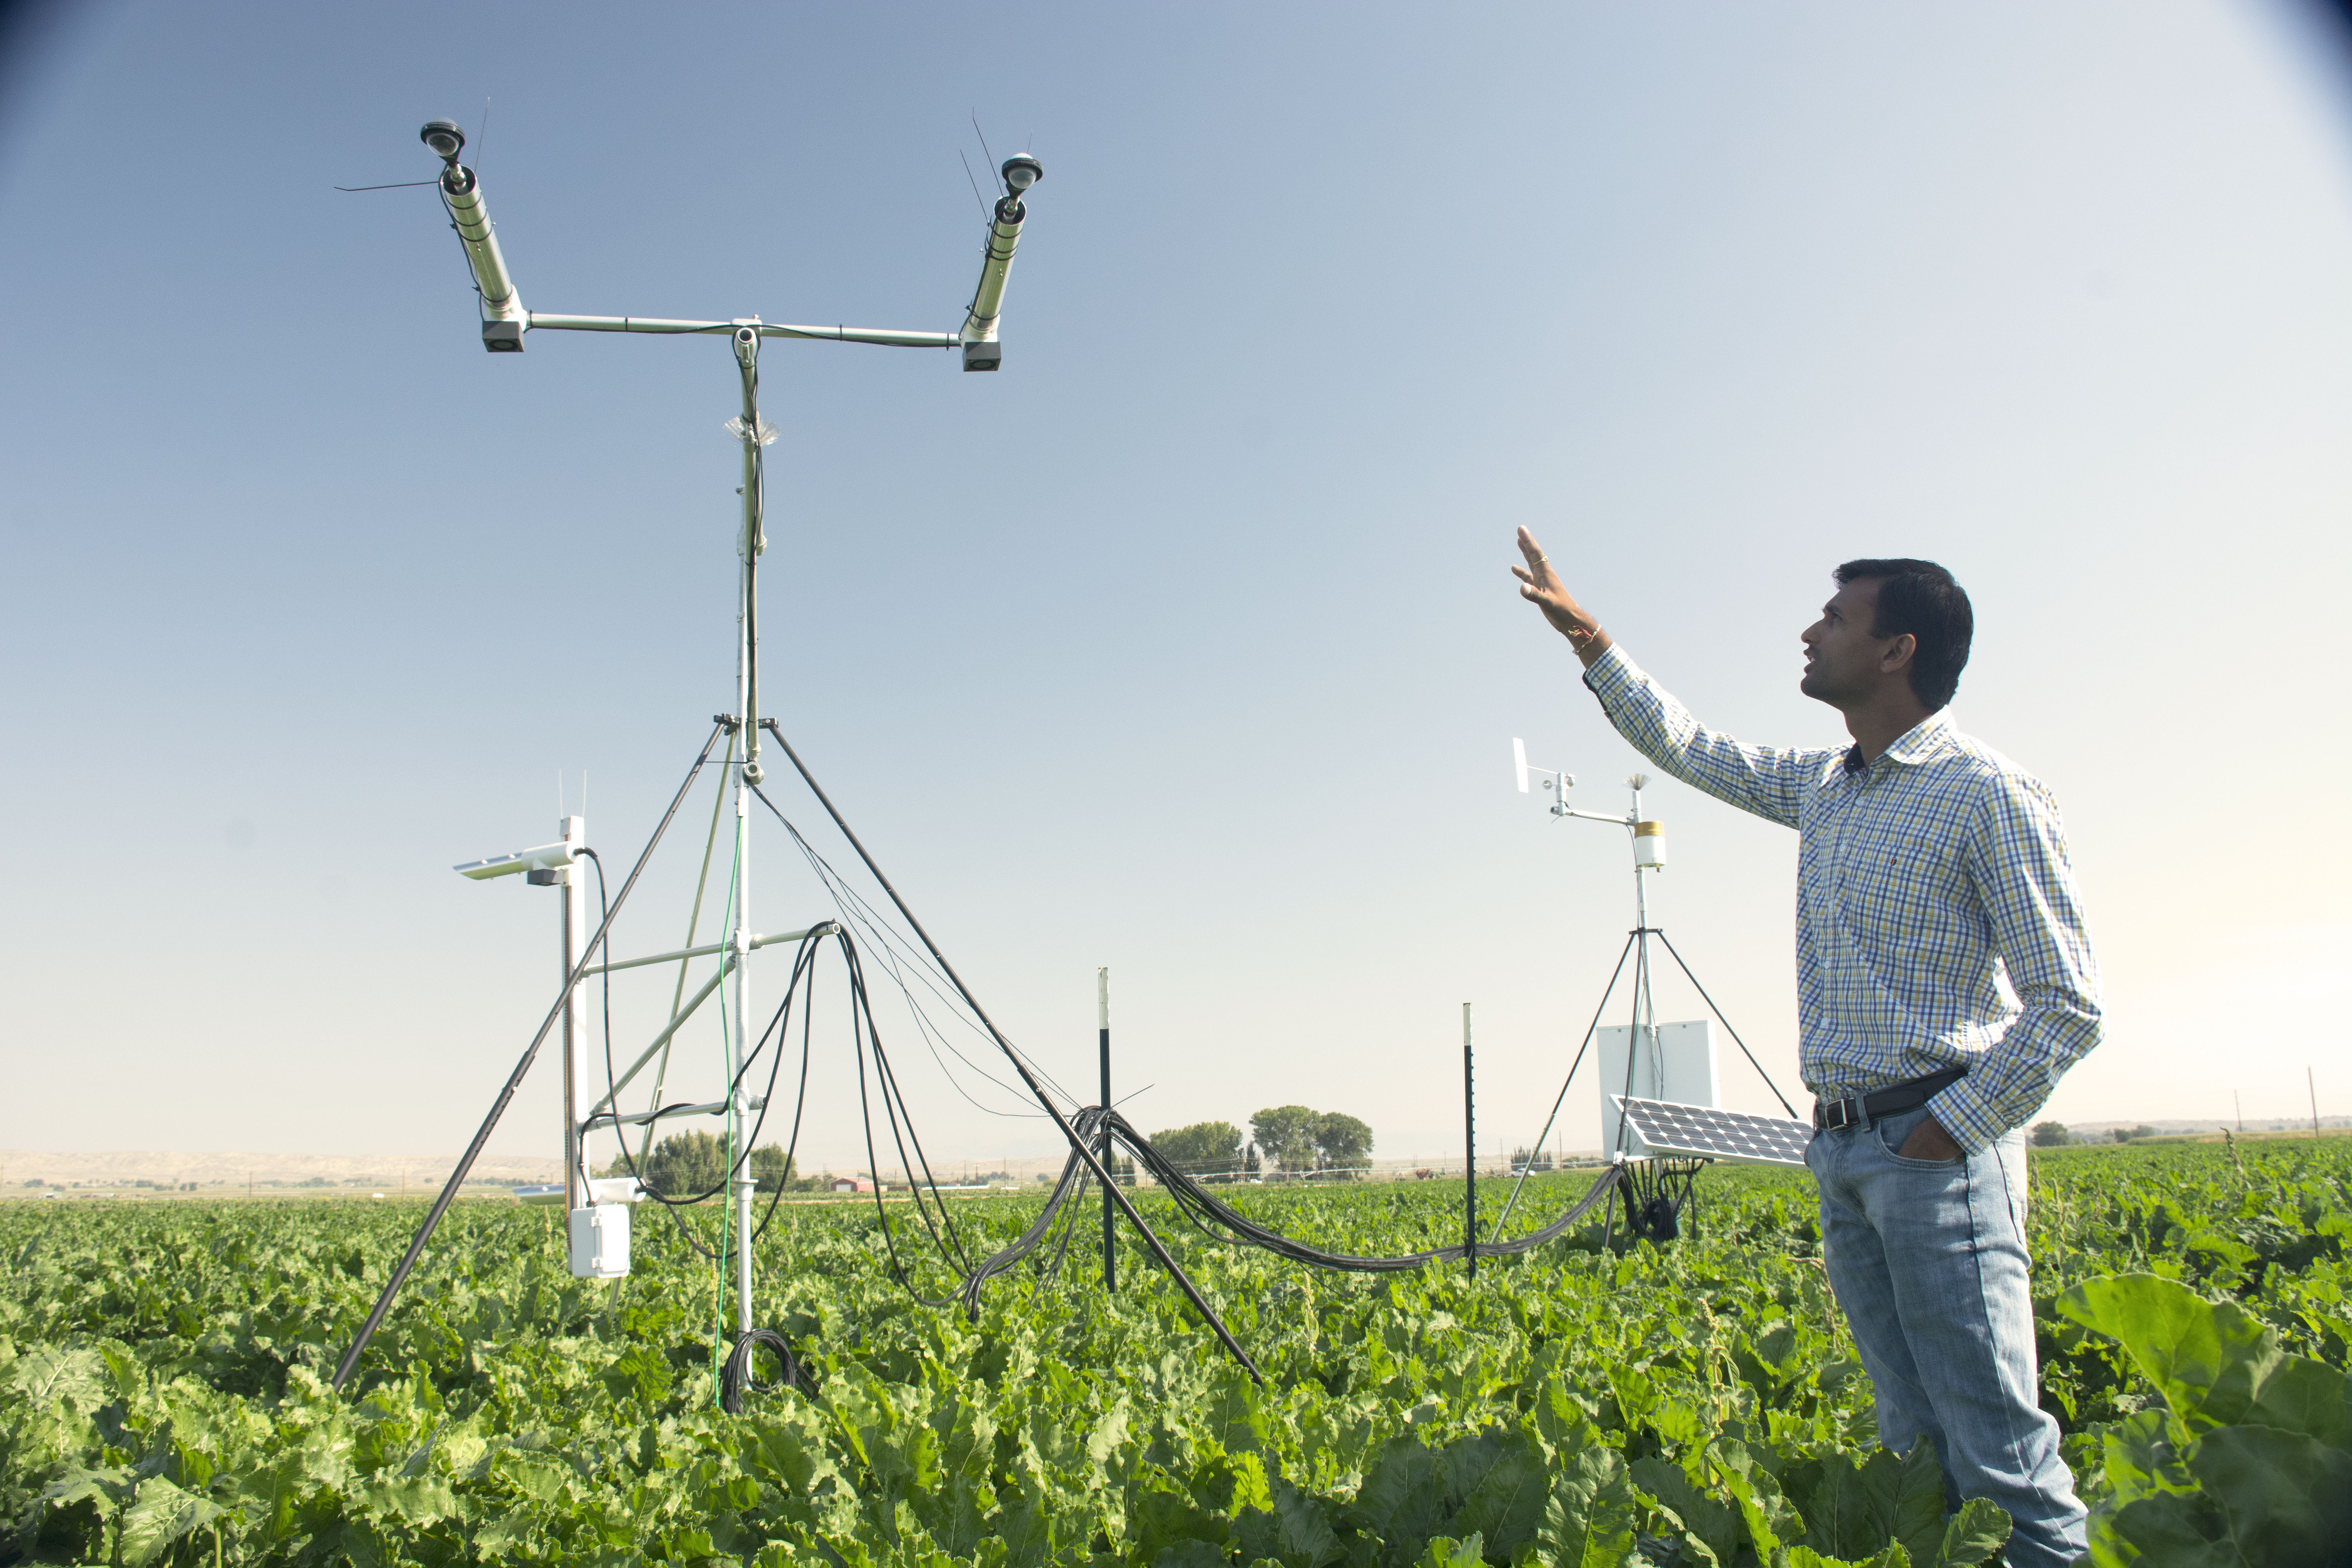 Research probes soil moisture sensor technology in Big Horn Basin